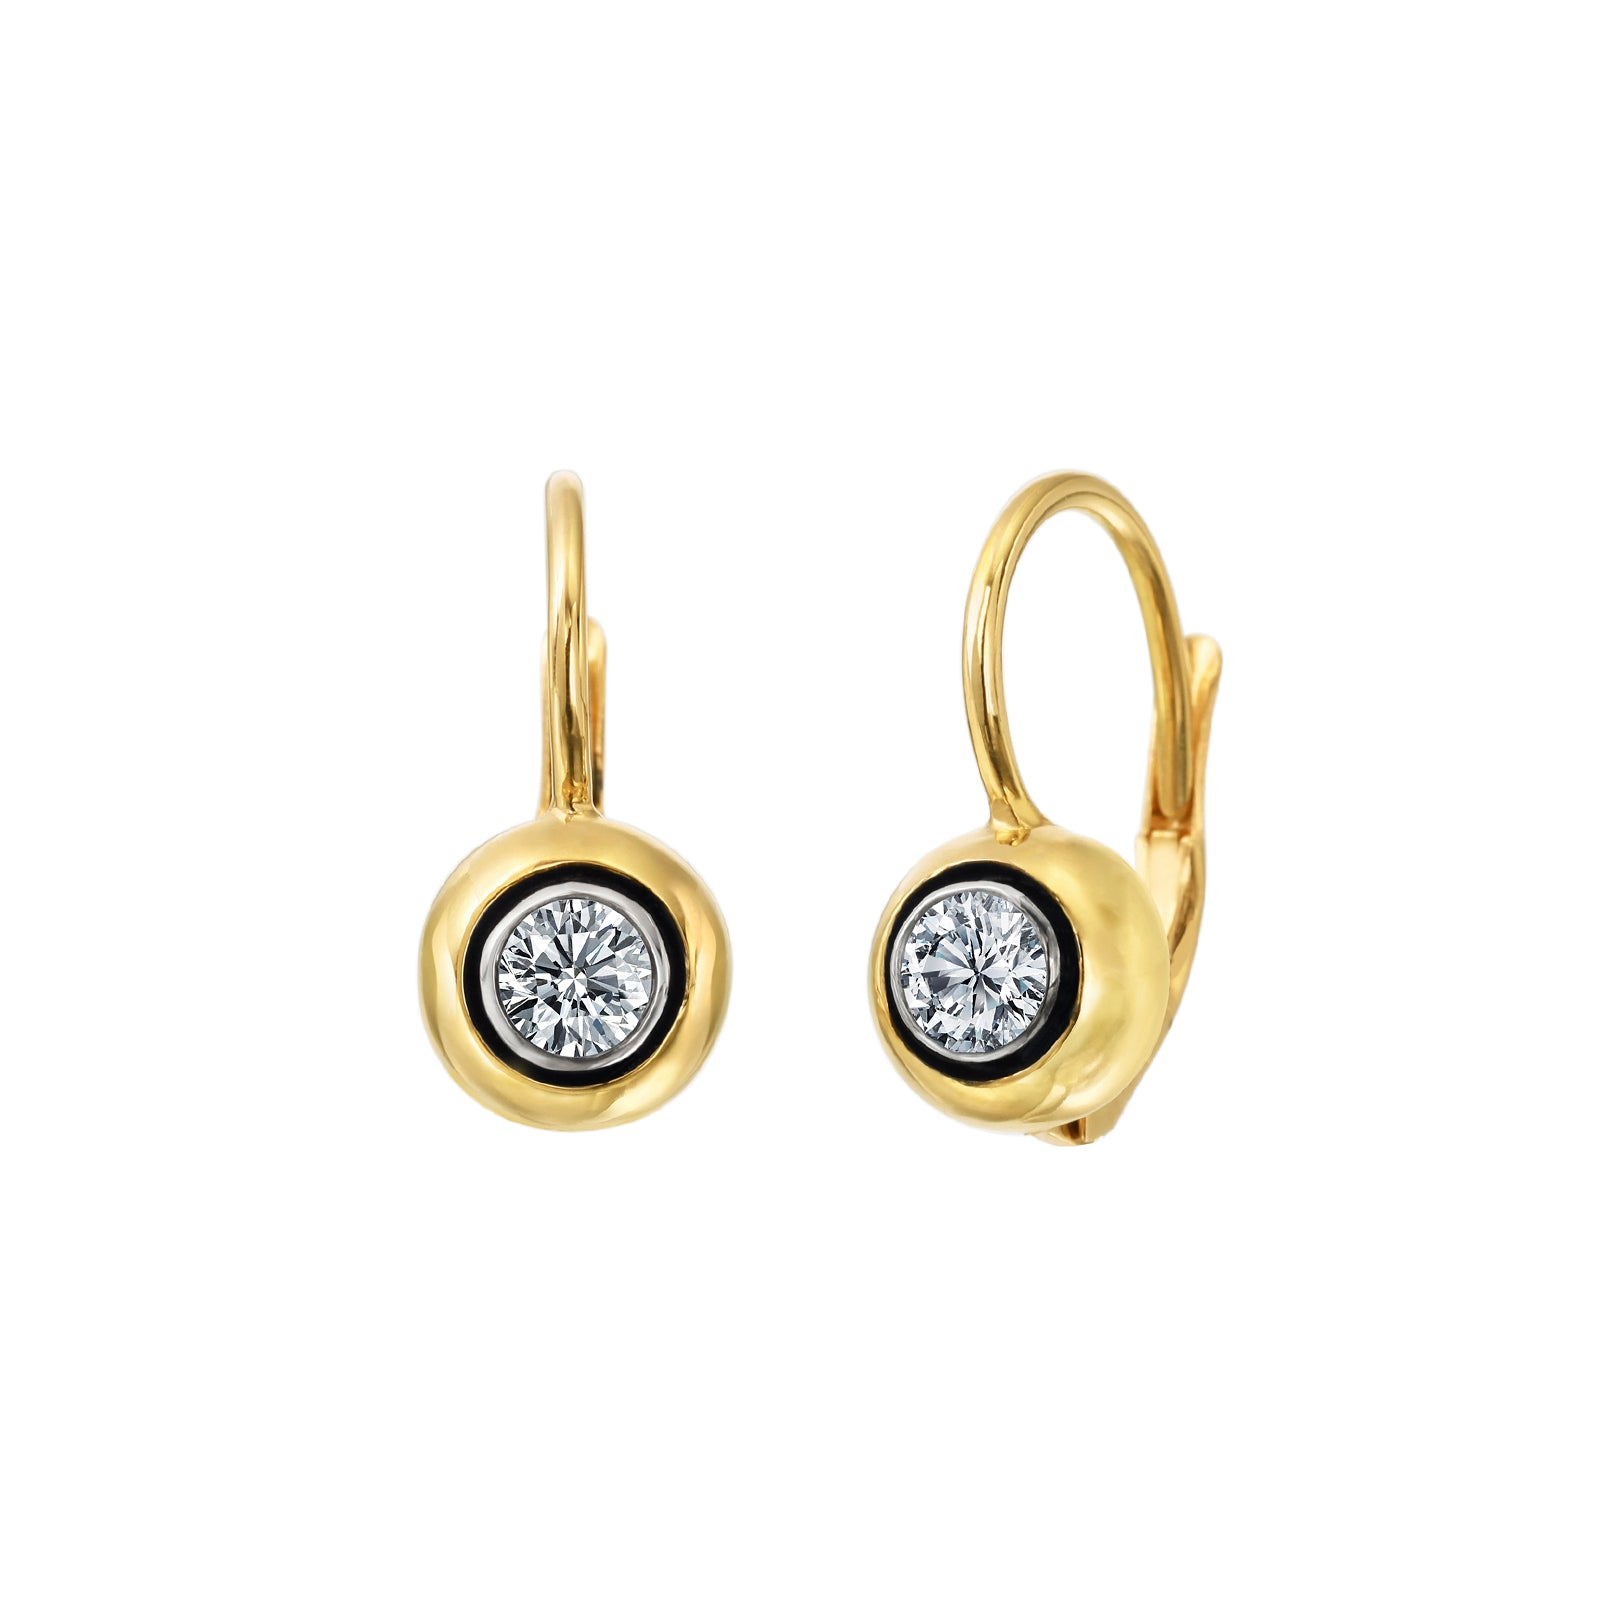 Nina Runsdorf All That Is Single Round Diamond Drop Earrings - Earrings - Broken English Jewelry